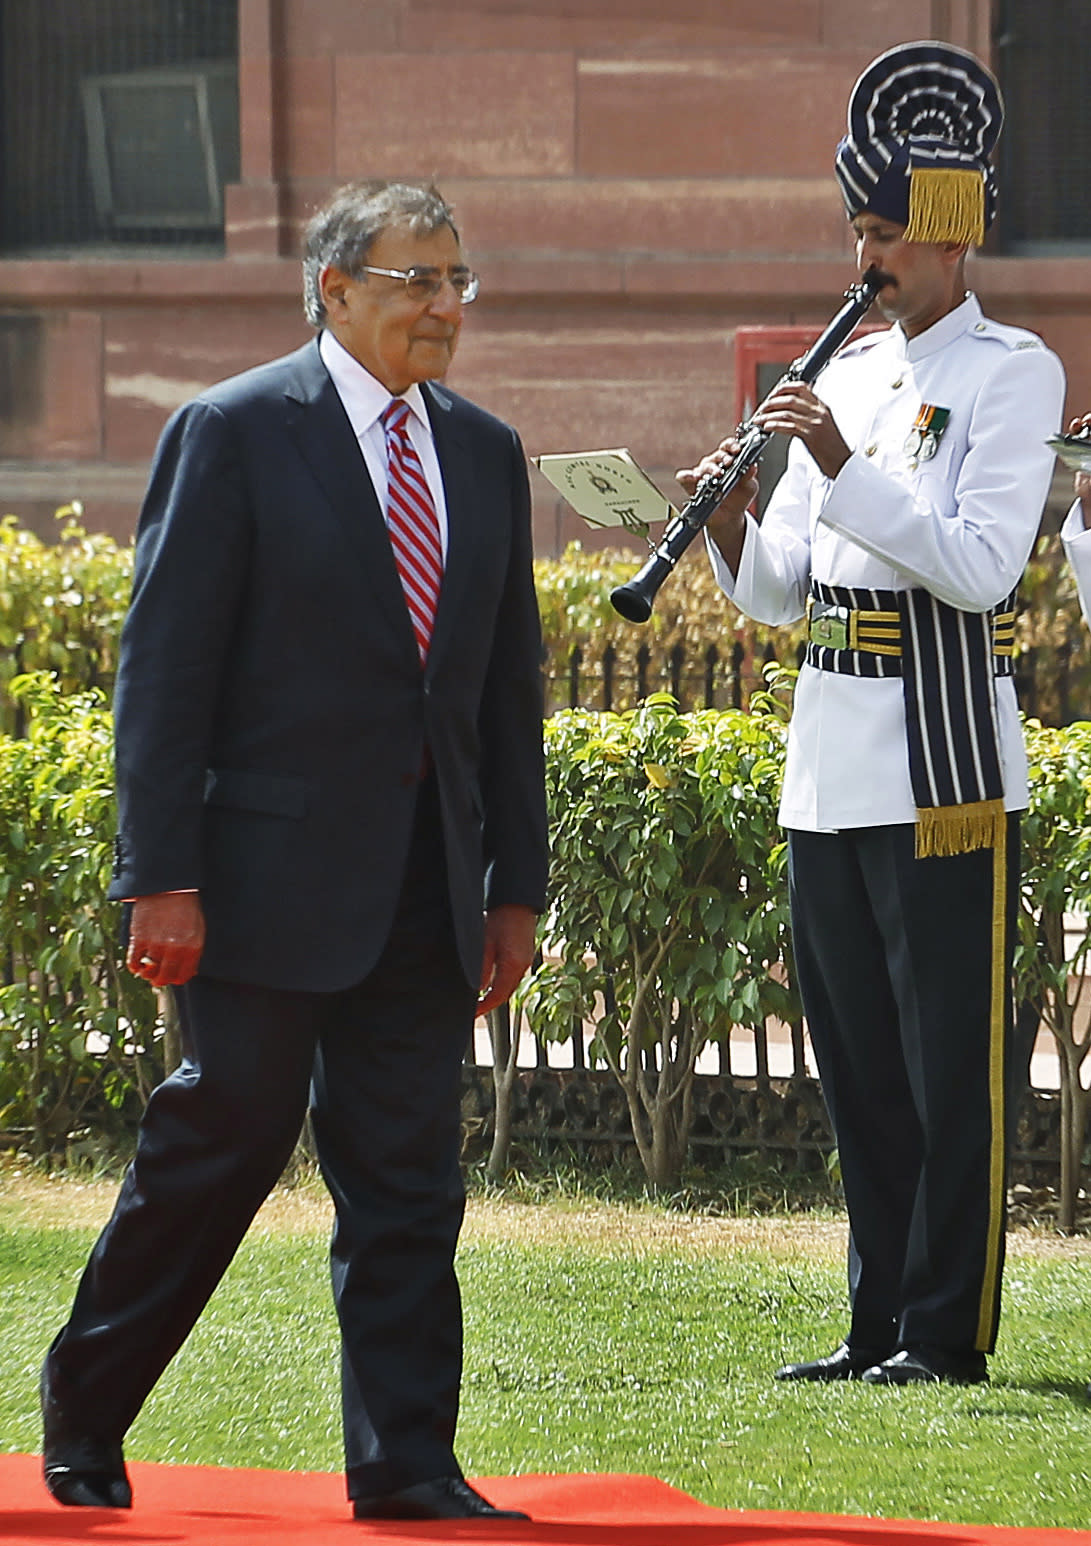 U.S. Defense Secretary Leon Panetta inspects a guard of honor in New Delhi, India, Wednesday, June 6, 2012. Panetta is urging leaders of India to play a more robust role in Afghanistan, as U.S. tensions with Pakistan, India's arch-rival, continue to churn. (AP Photo/Saurabh Das)